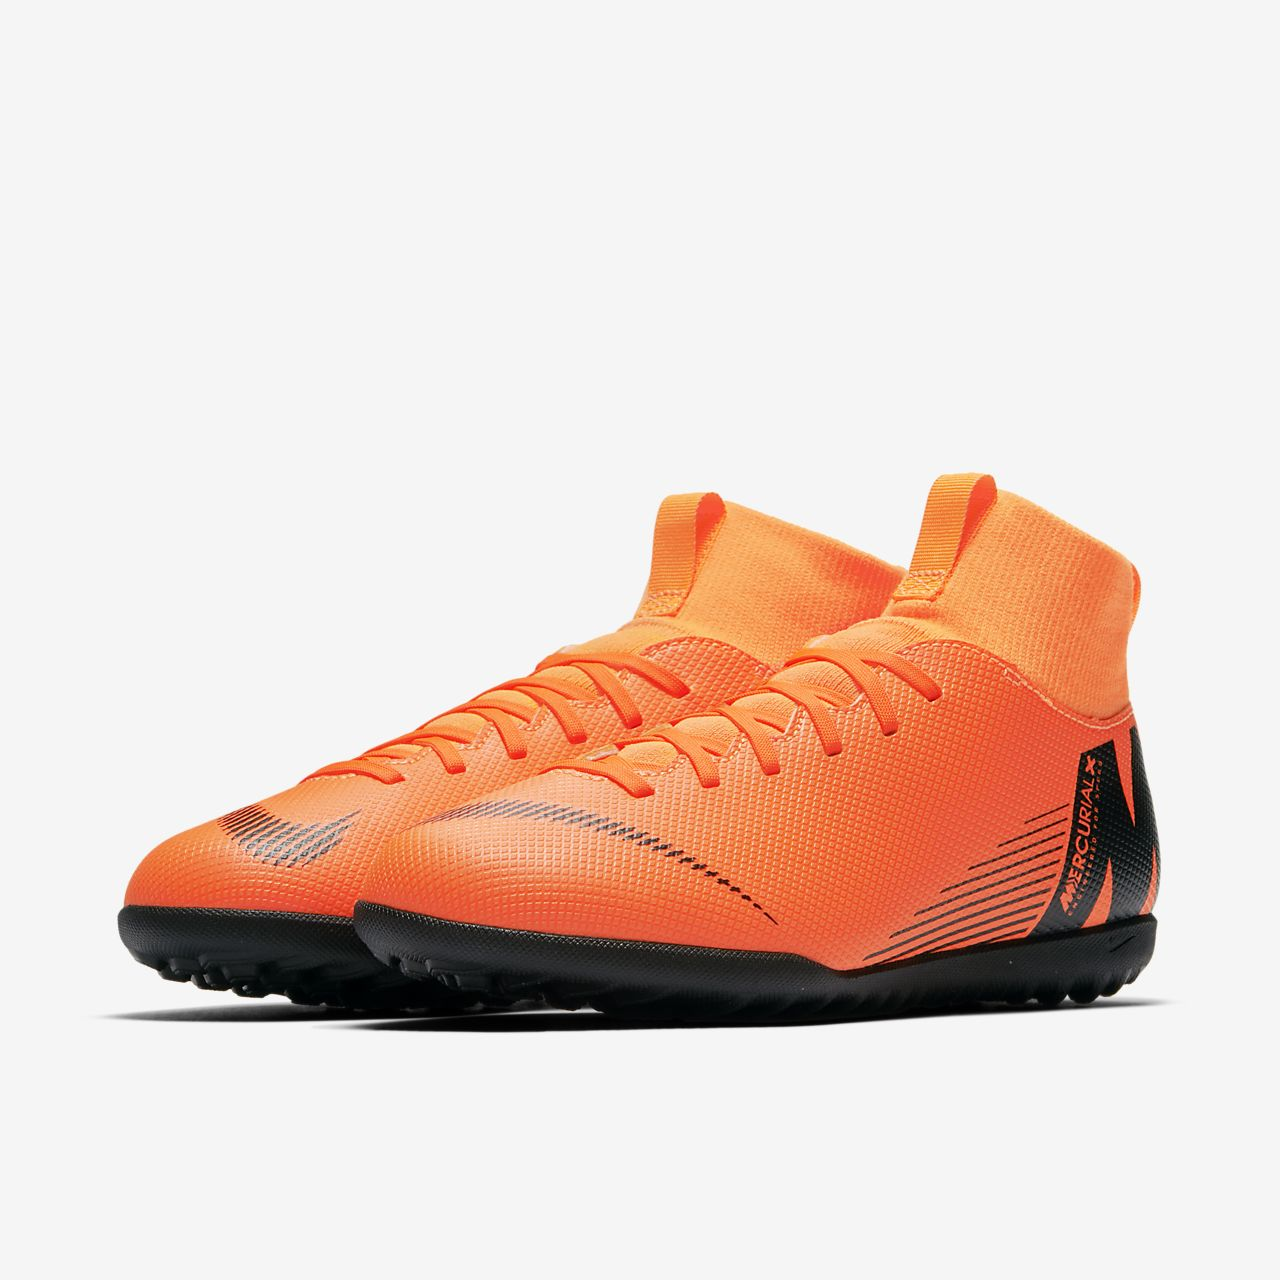 ... Nike Jr. MercurialX Superfly VI Club TF Younger/Older Kids'  Artificial-Turf